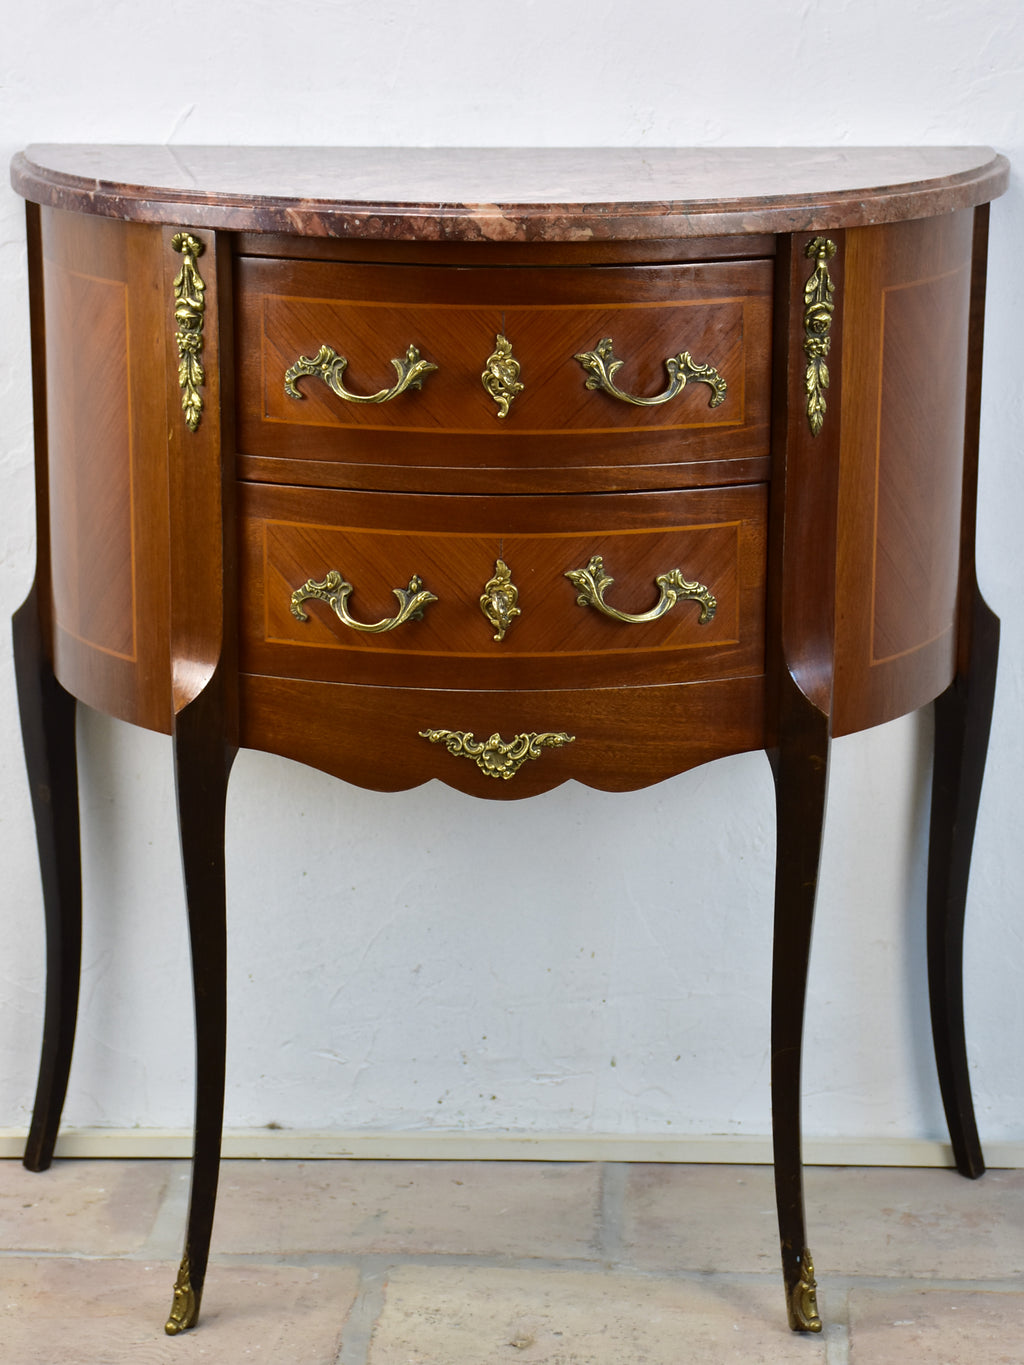 Antique French demilune commode with marble top